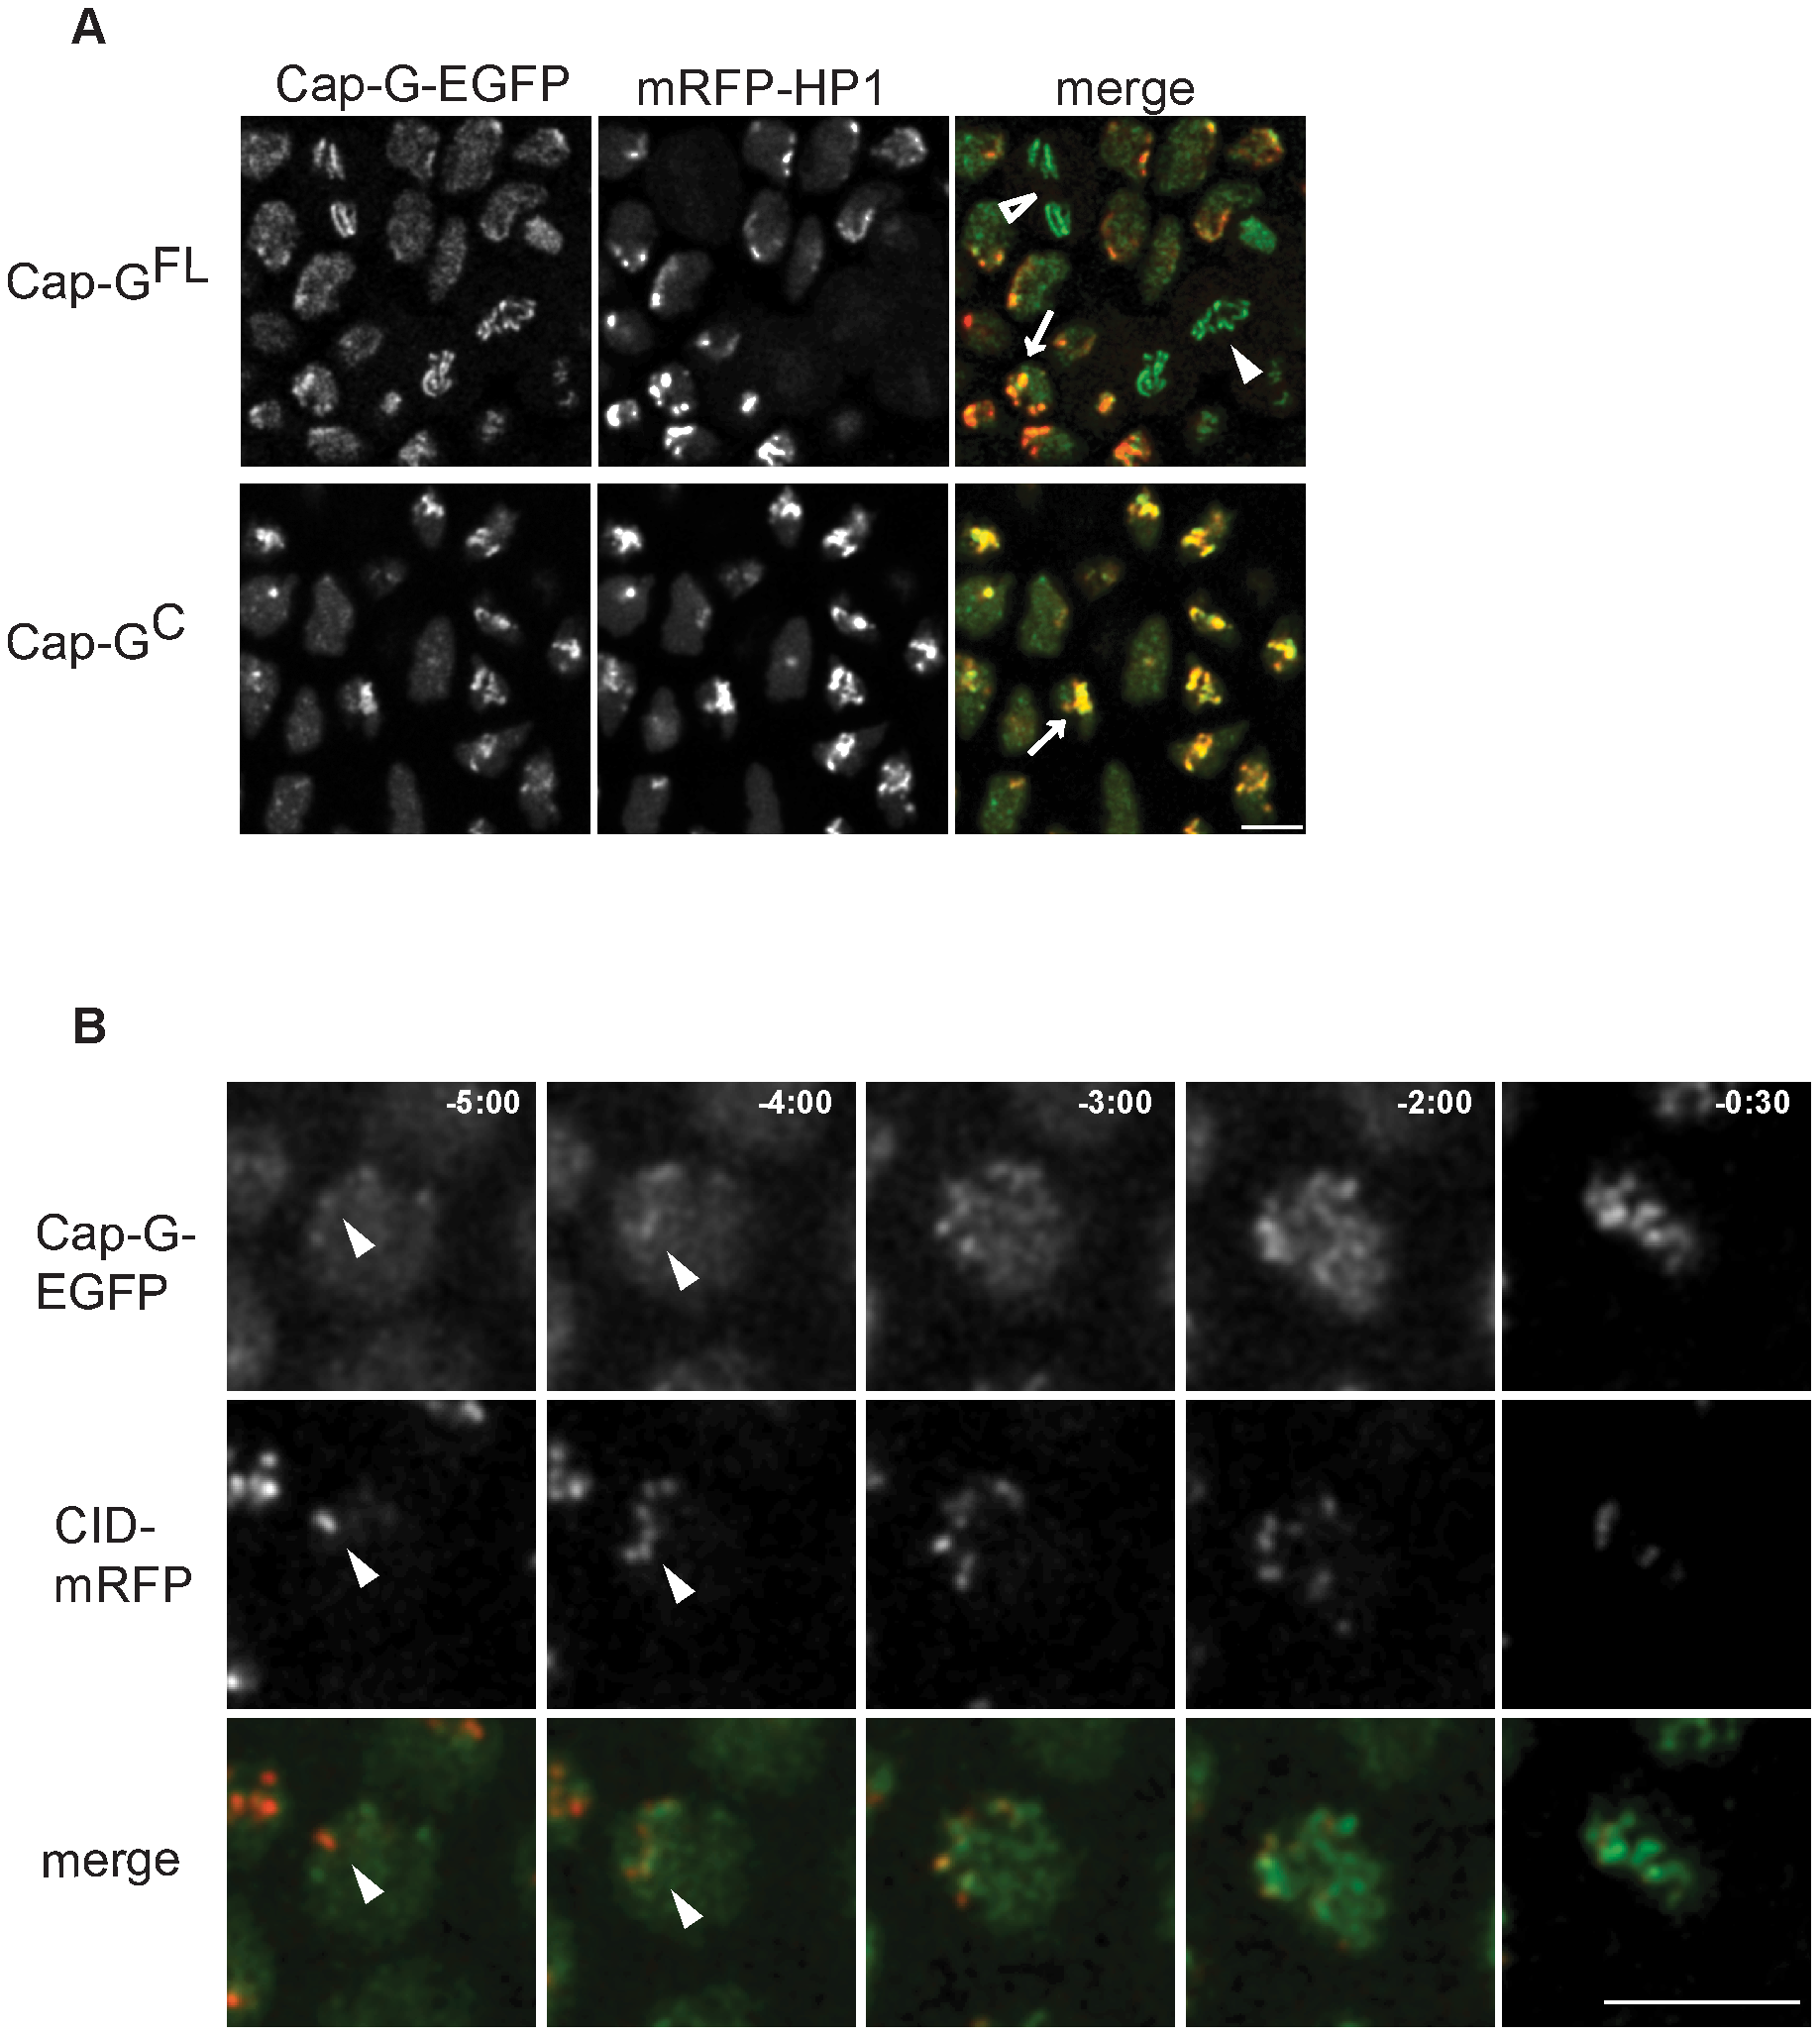 Cap-G-EGFP co-localizes with HP1 in interphase and initiates chromatin loading at centromeres.